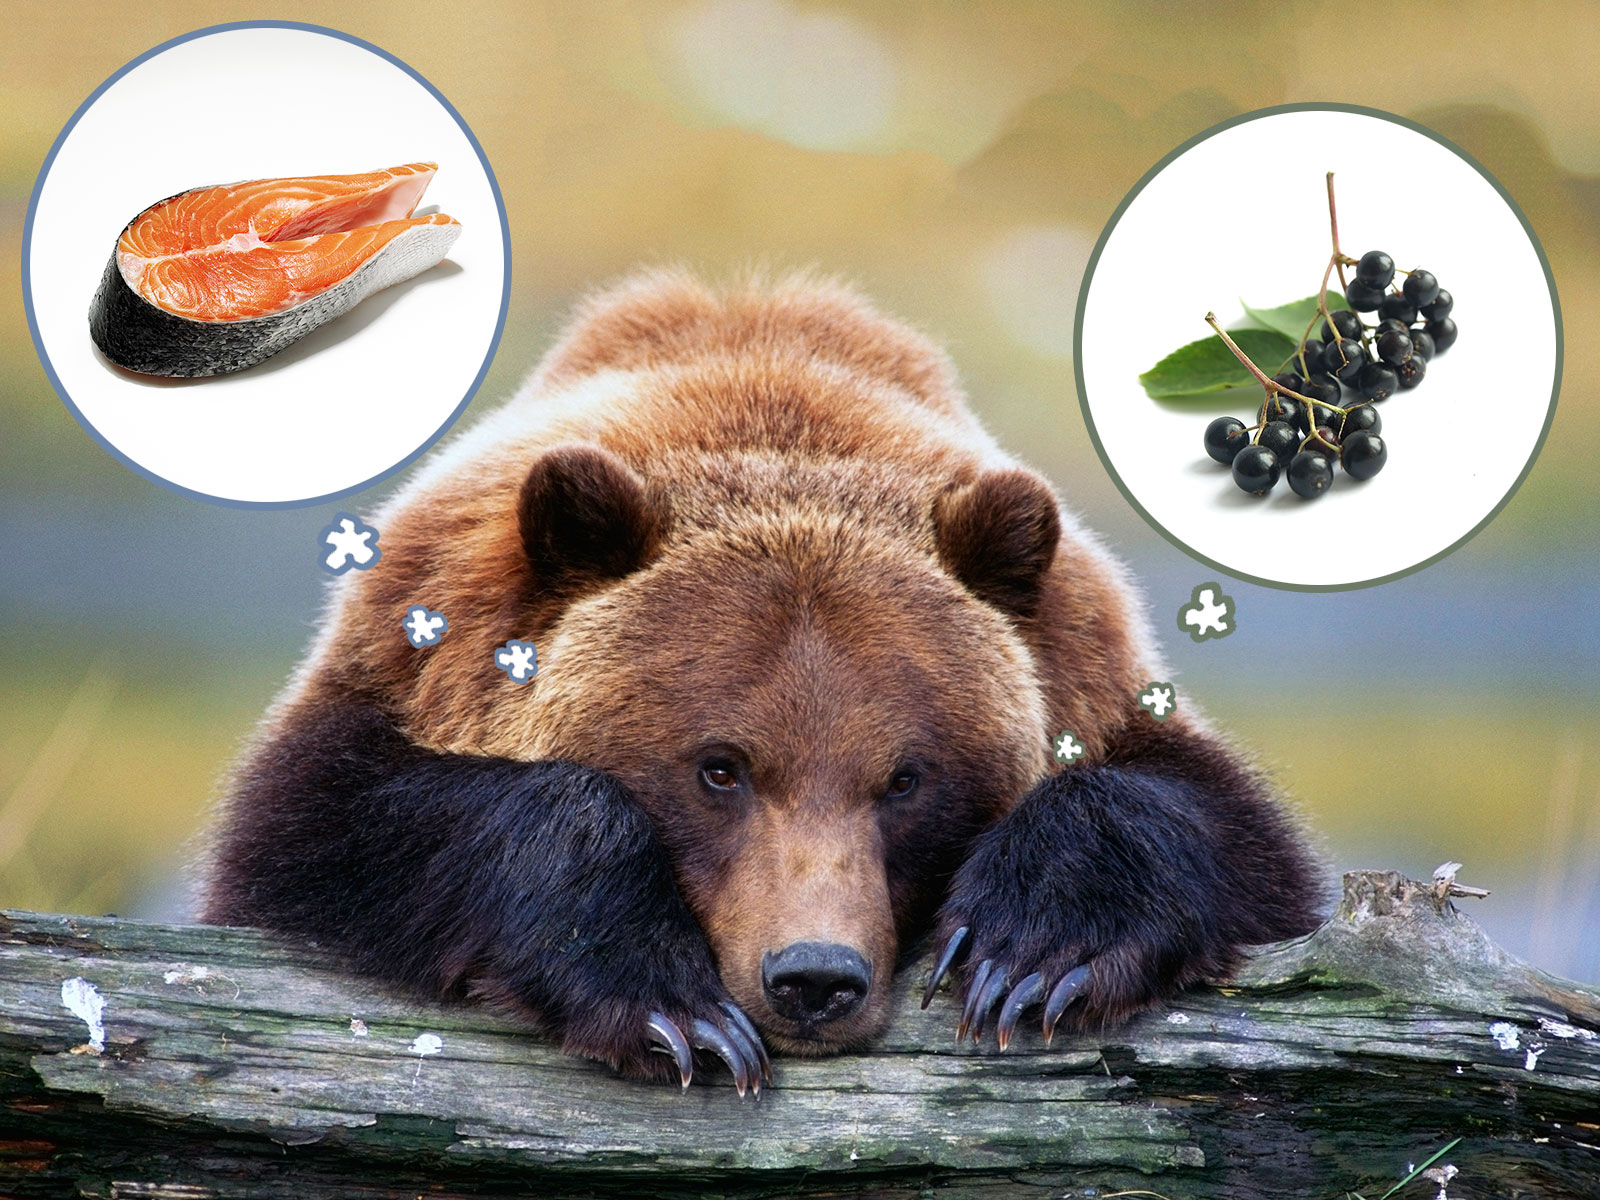 Bears Are Turning Vegetarian Due to Climate Change | Food ...